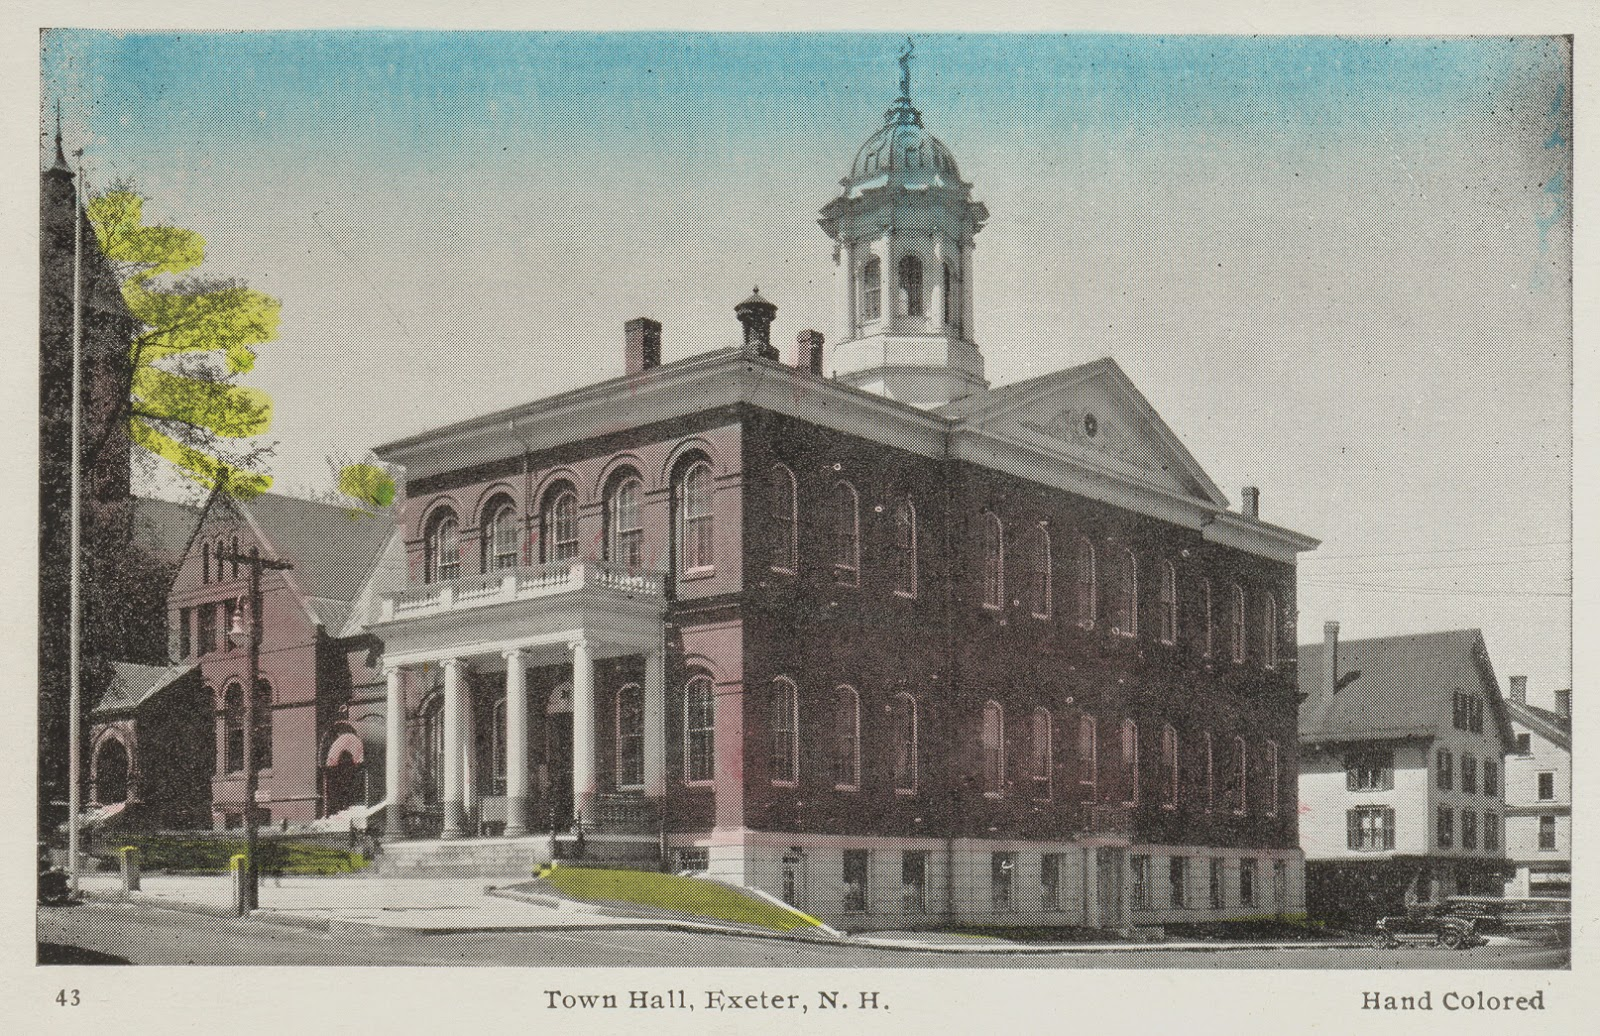 exeter office space senate imagine if the town government identified problem say lack of downtown restrooms and insufficient office space then proposed altering exeter town hall controversy 1931